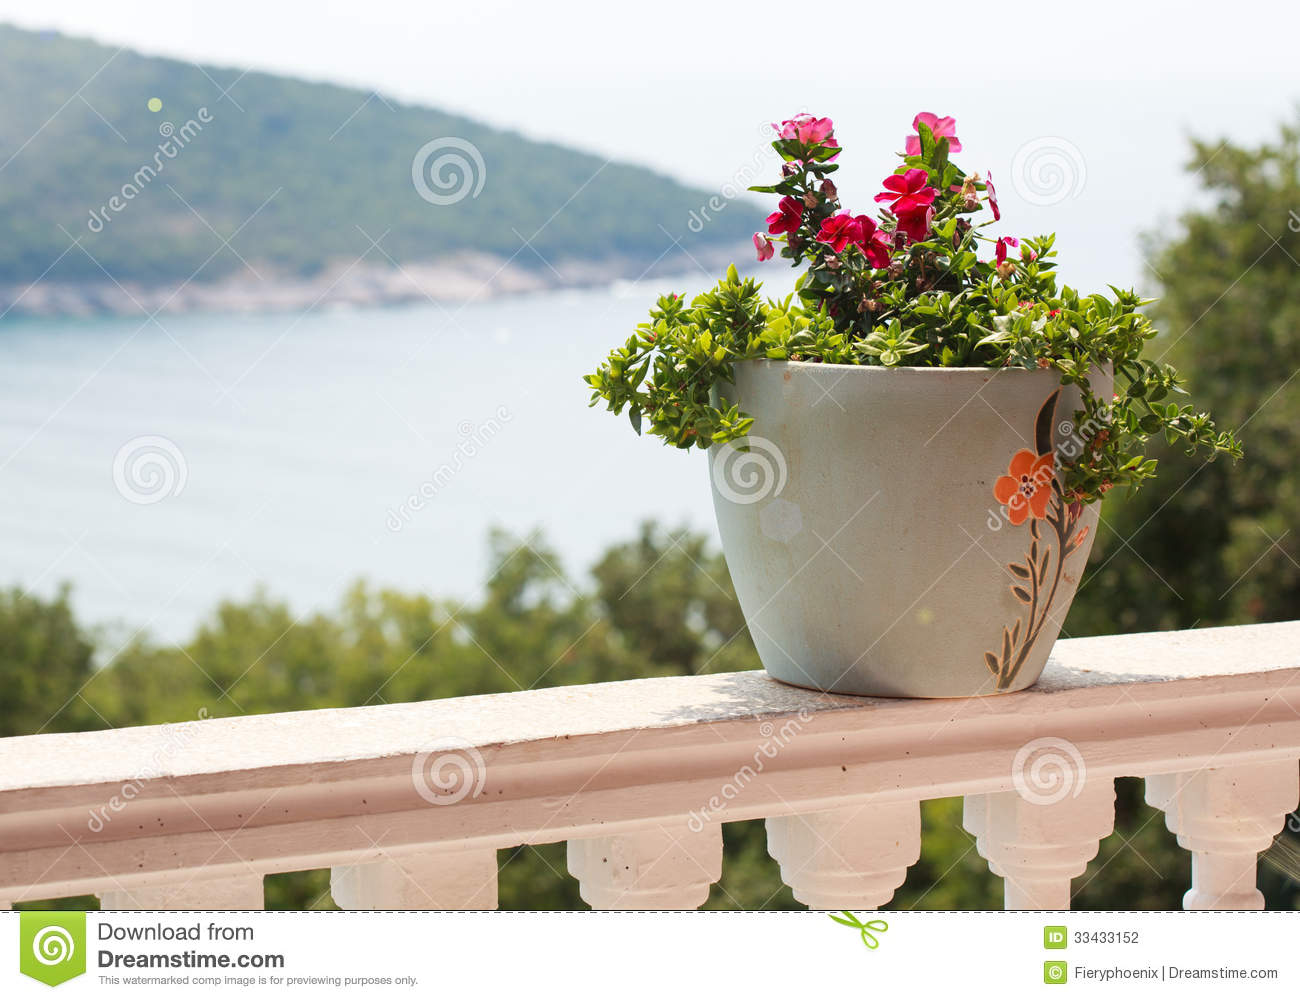 A Pot Of Flowers On The Balcony Balustrade With A